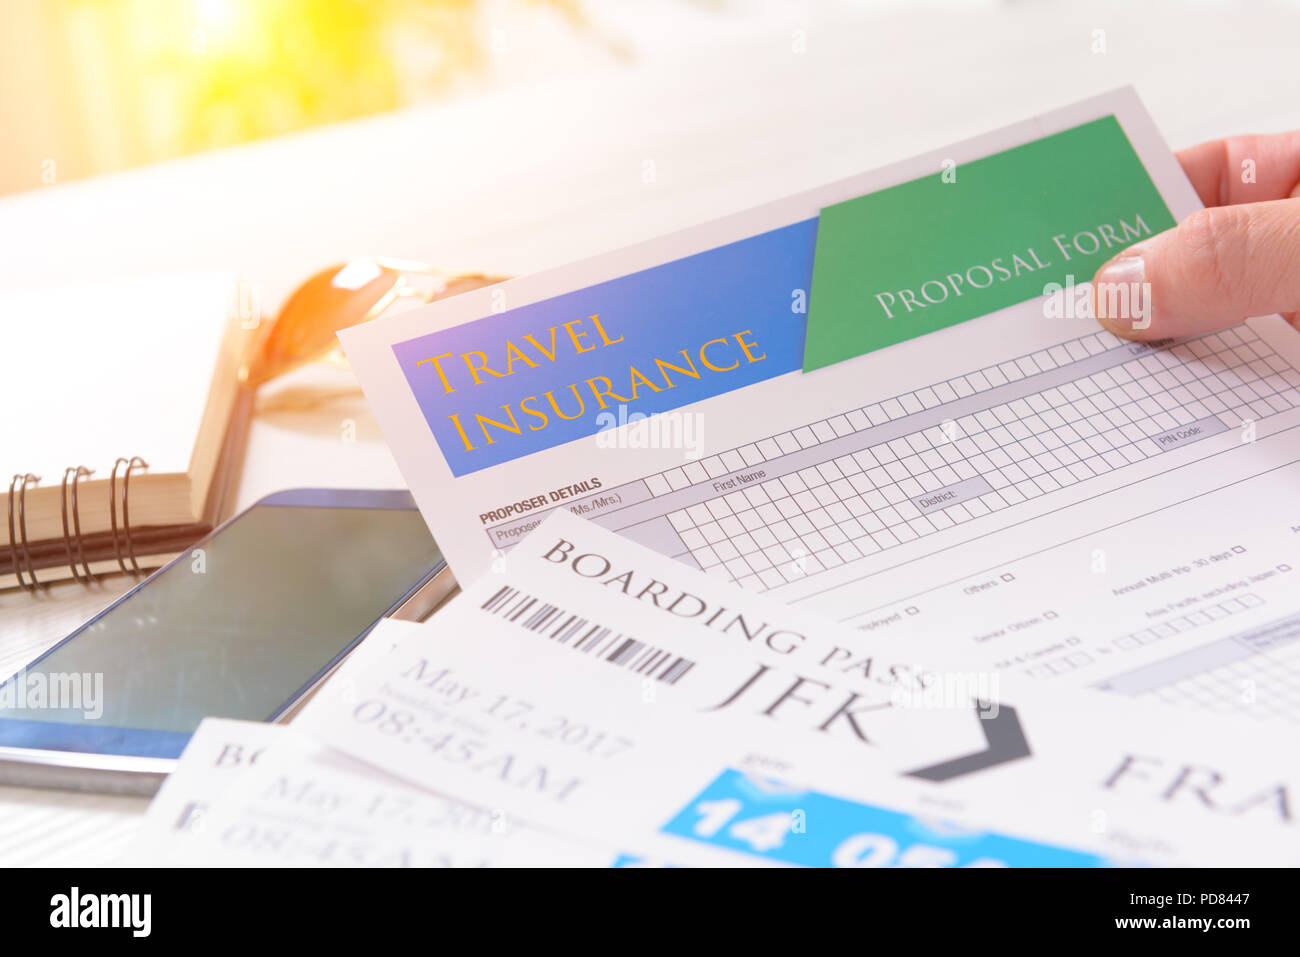 Airline boarding pass tickets in hand with travel insurance, sunglasses, pen and notebook as a concept of traveling - Stock Image